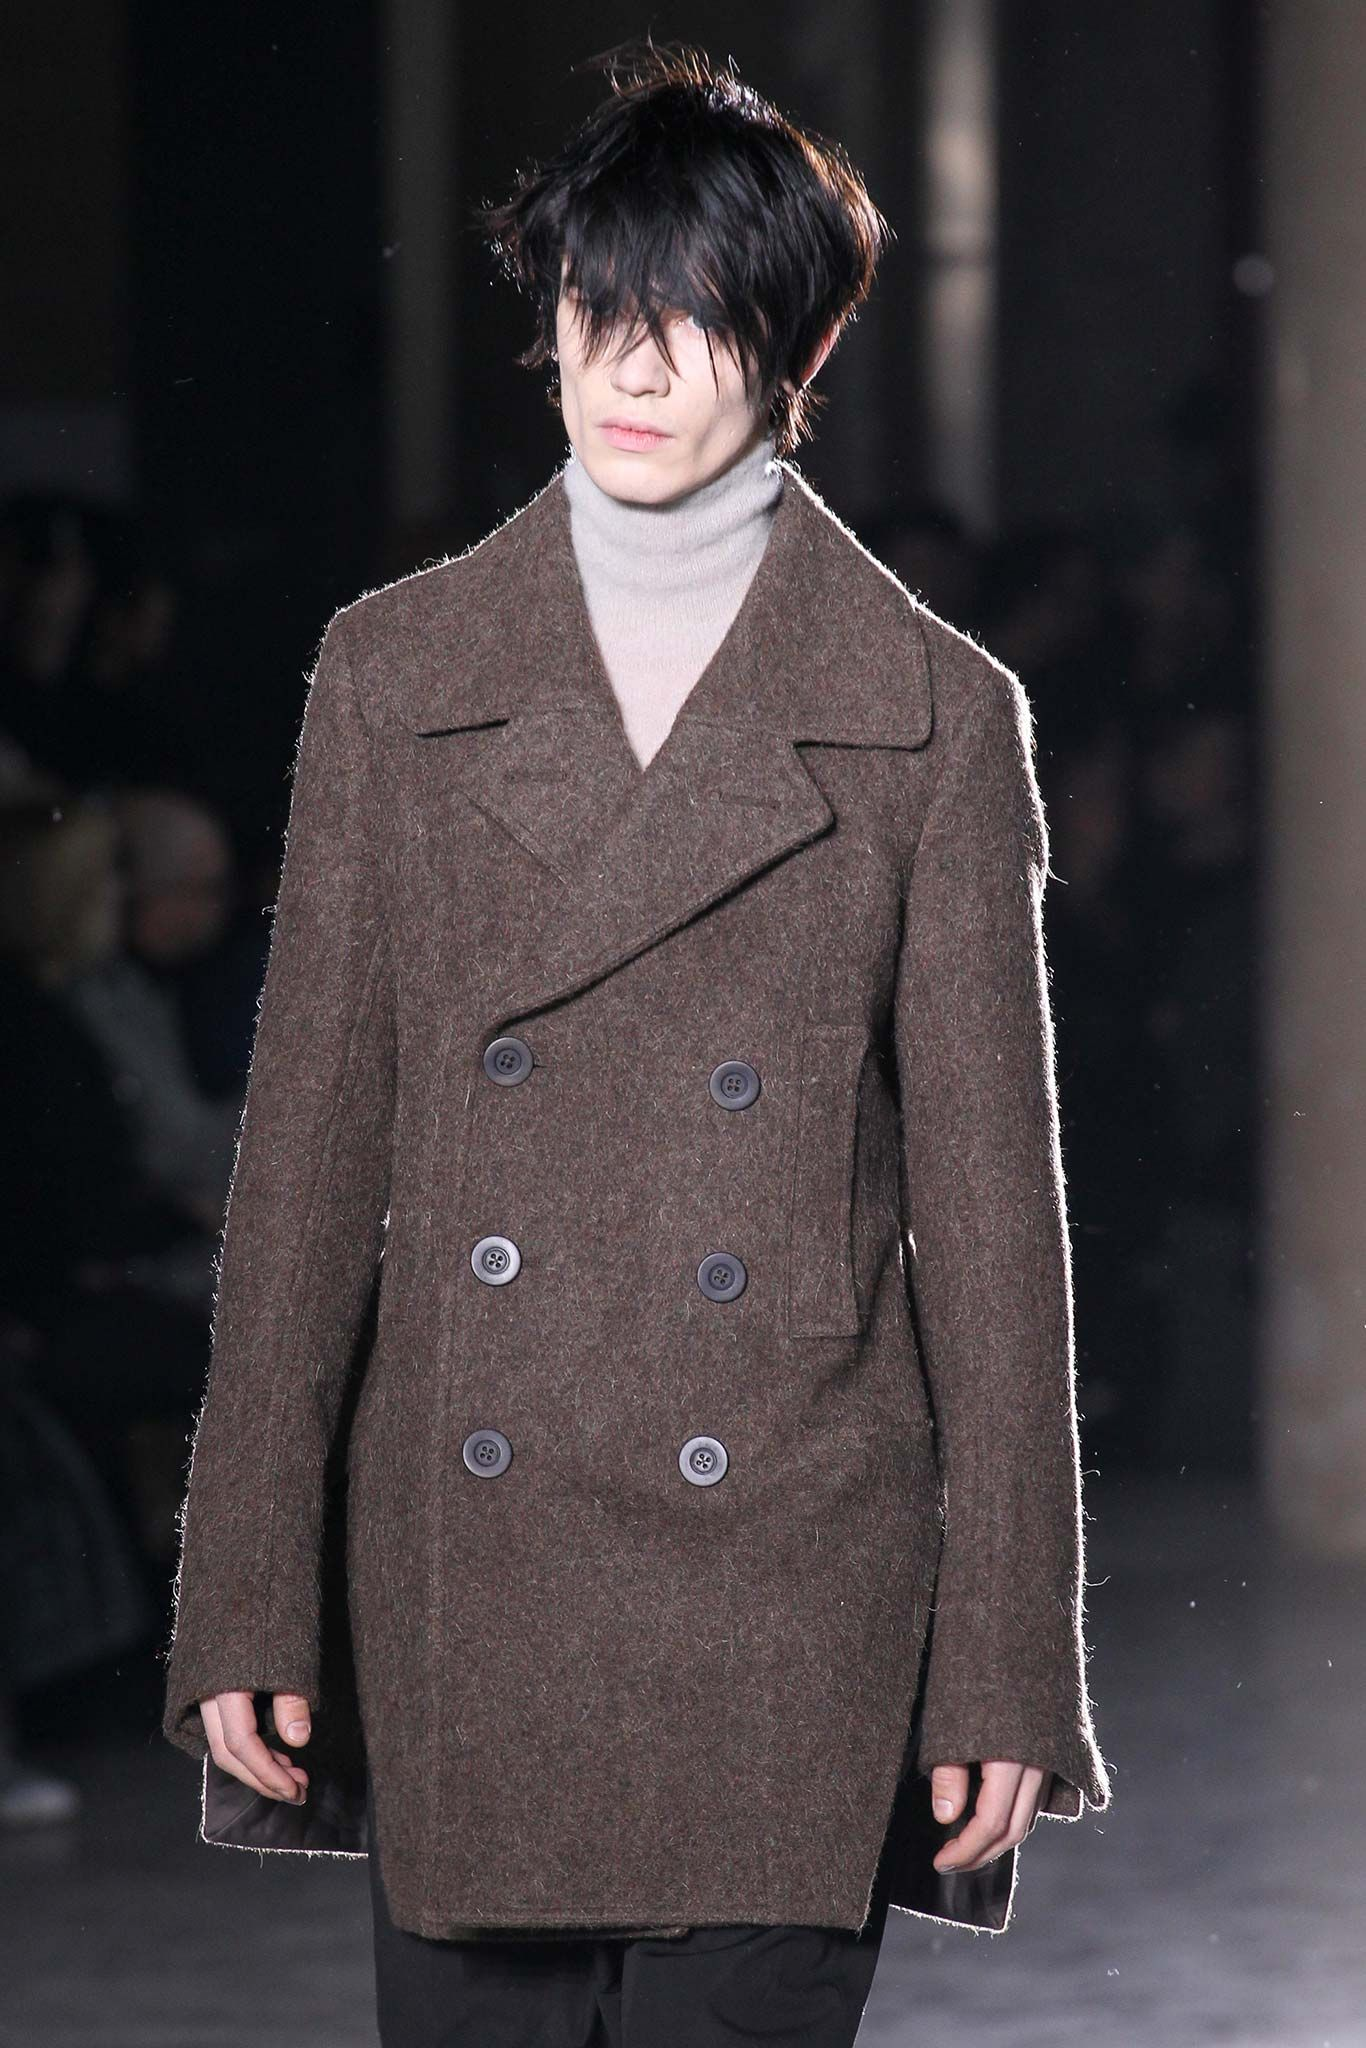 Rick owens fall menswear look of his style